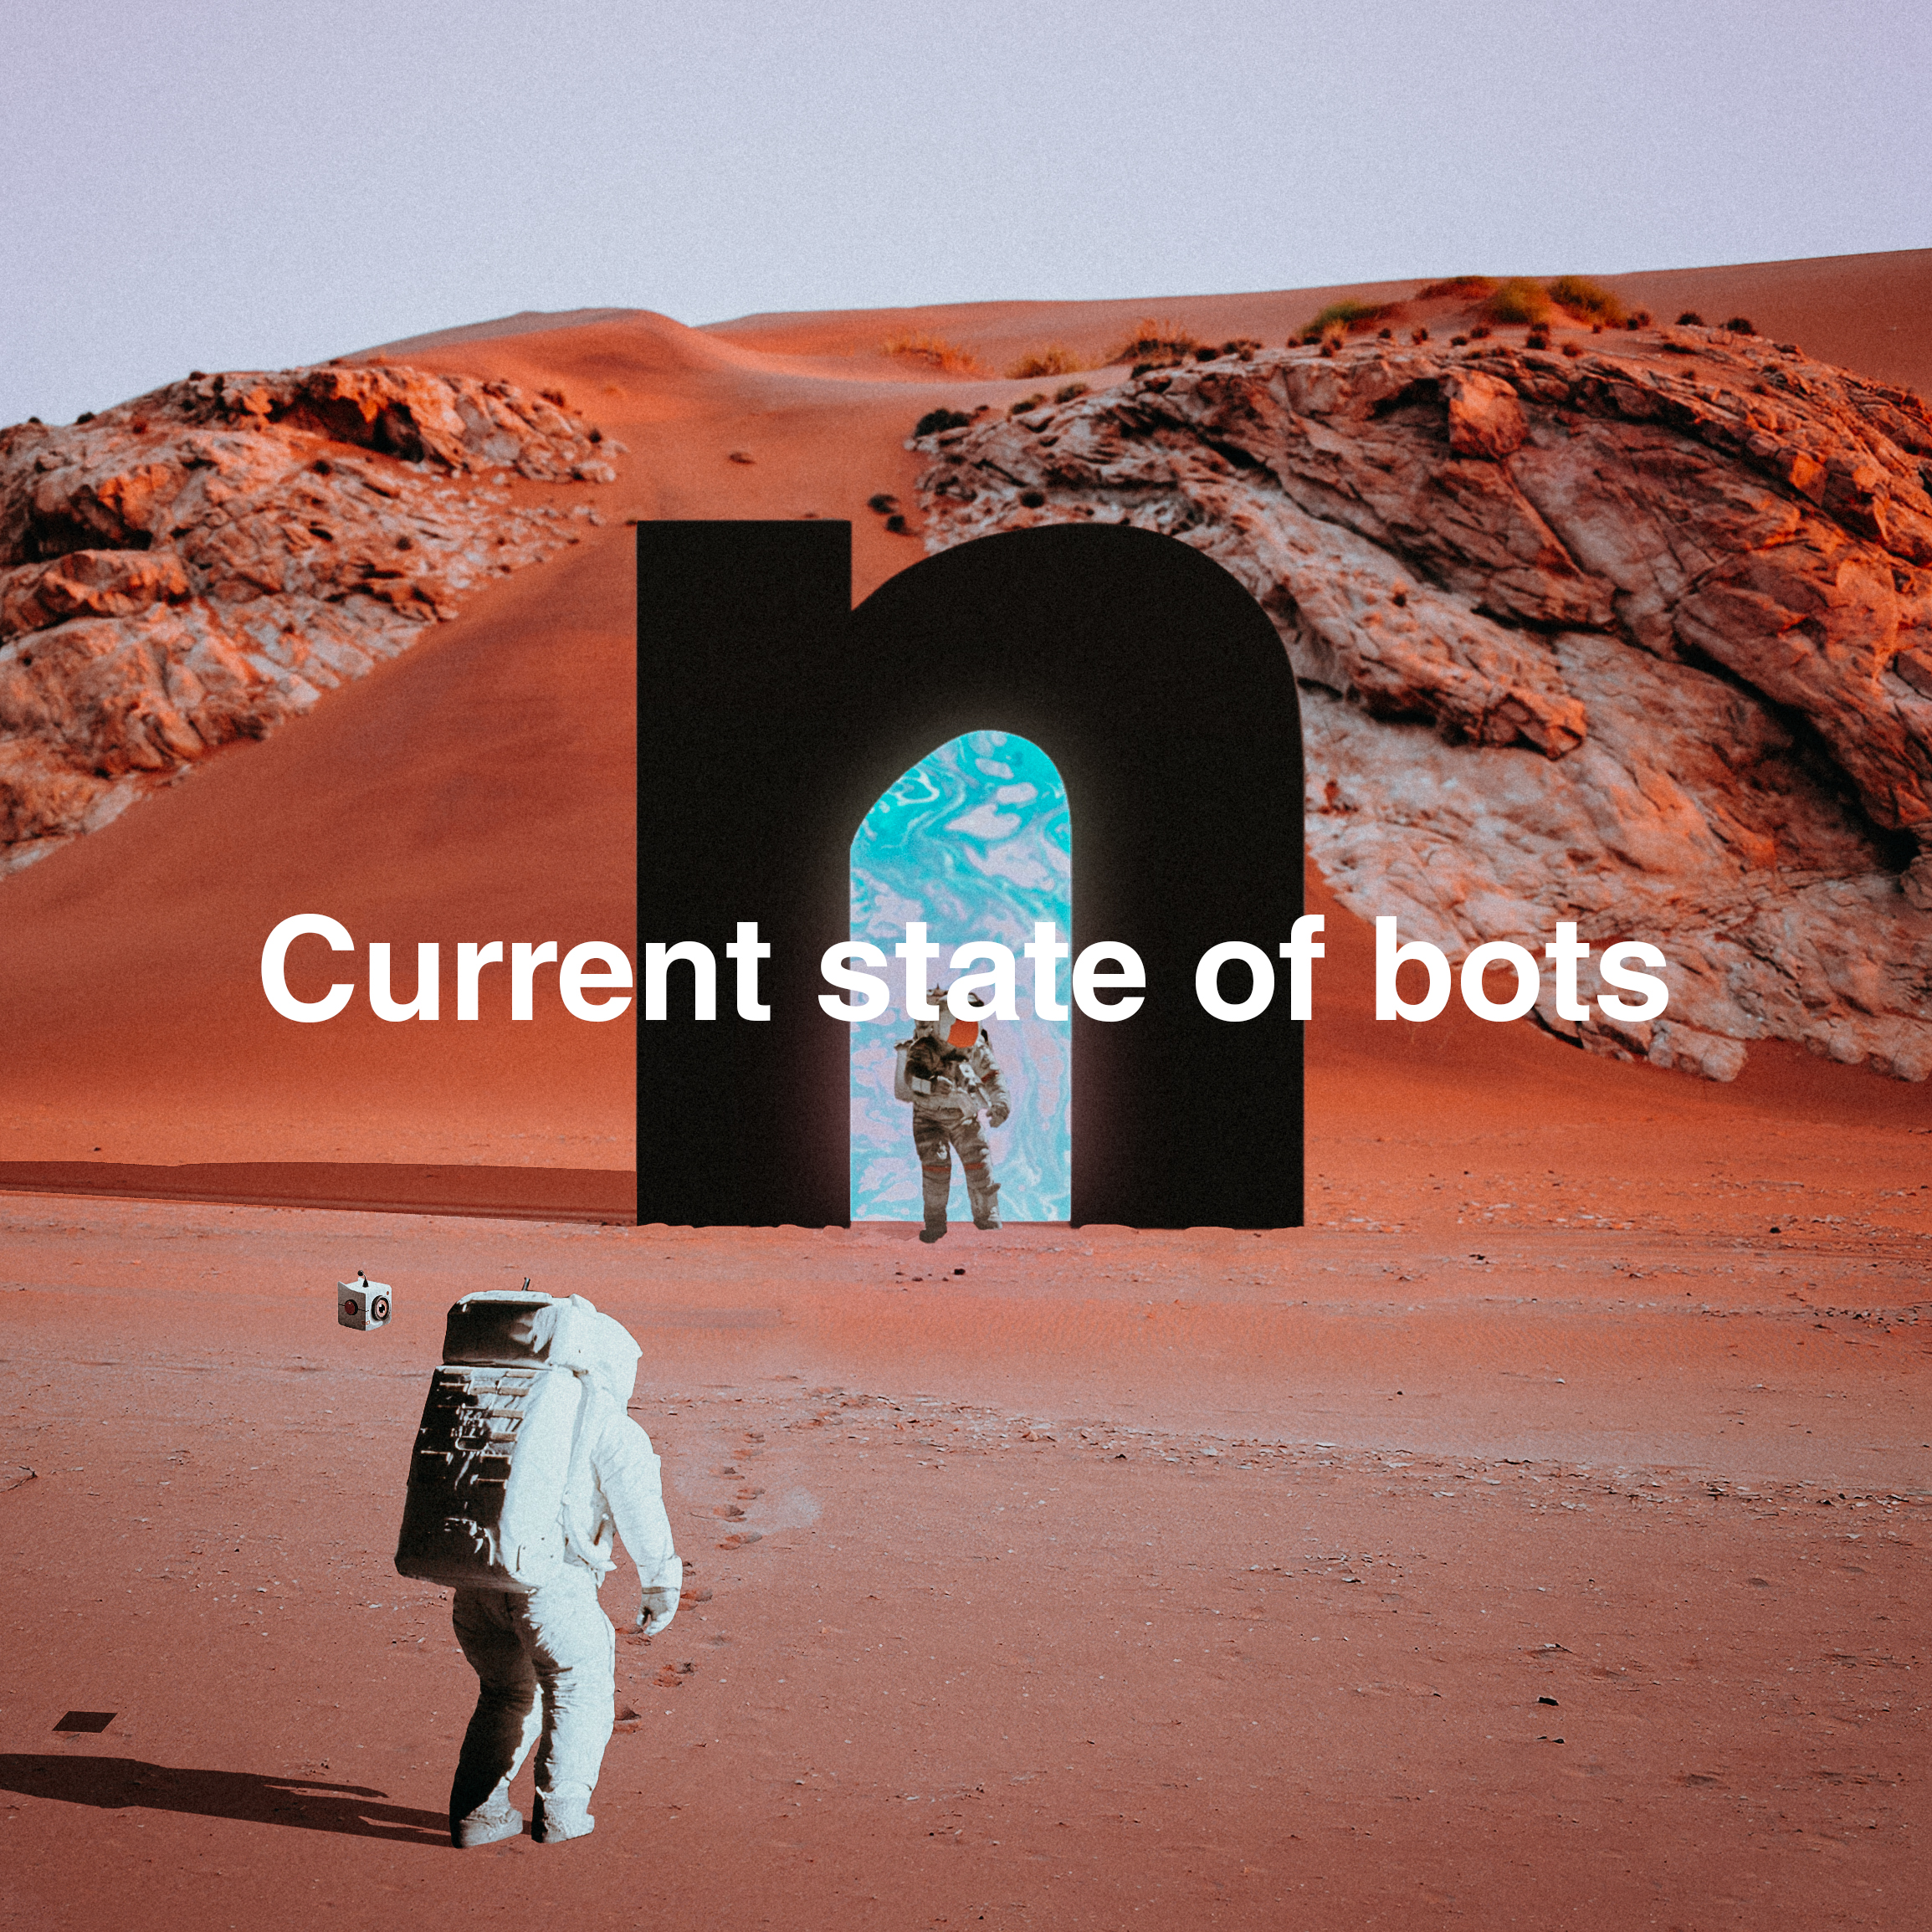 Current state of bots